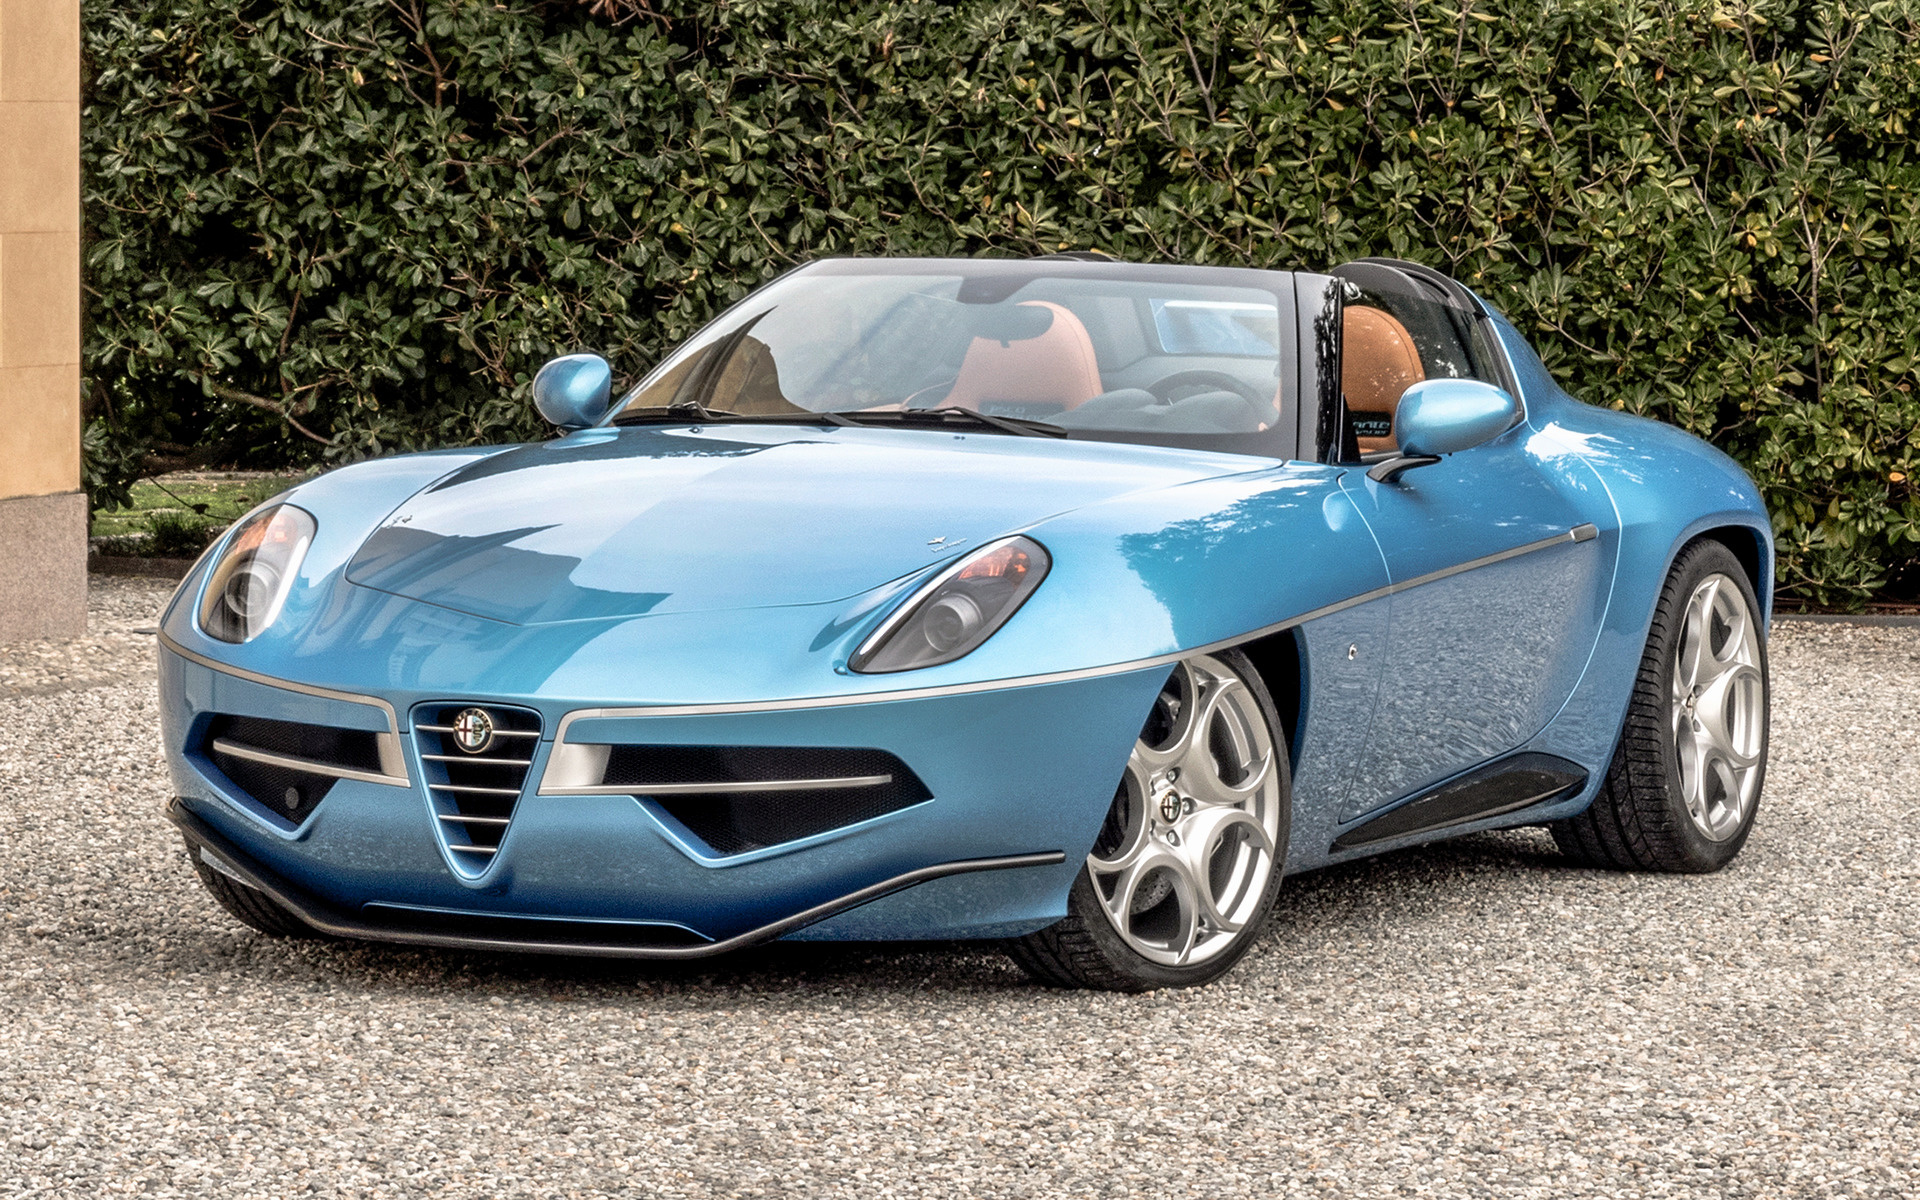 Wallpaper 3d Hd Car Alfa Romeo Disco Volante Spyder 1 2016 Wallpapers And